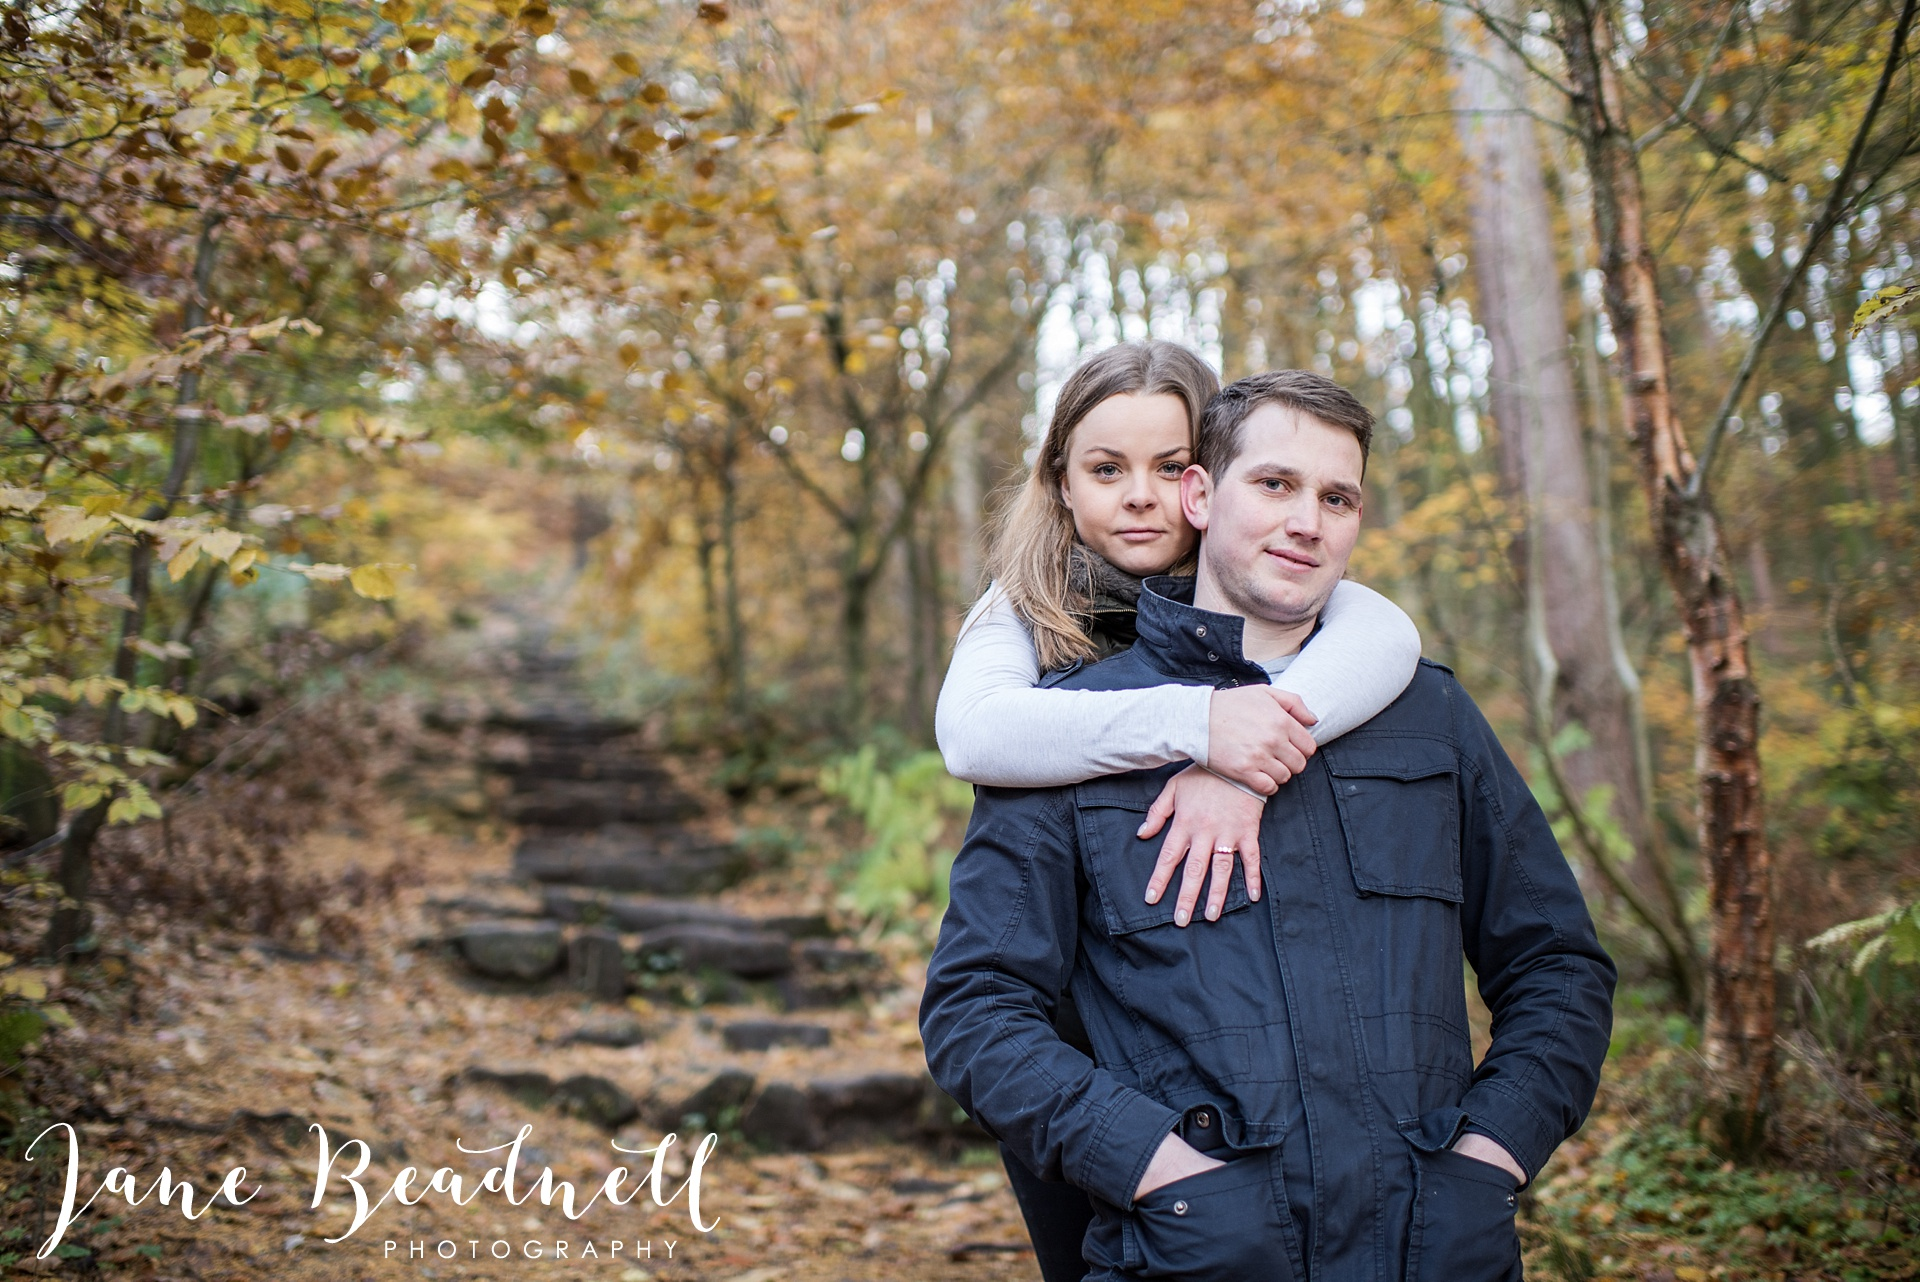 engagement-shoot-yorkshire-wedding-photographer-jane-beadnell-photography-uk-and-destination-wedding-photographer-engagement-shoot_0022